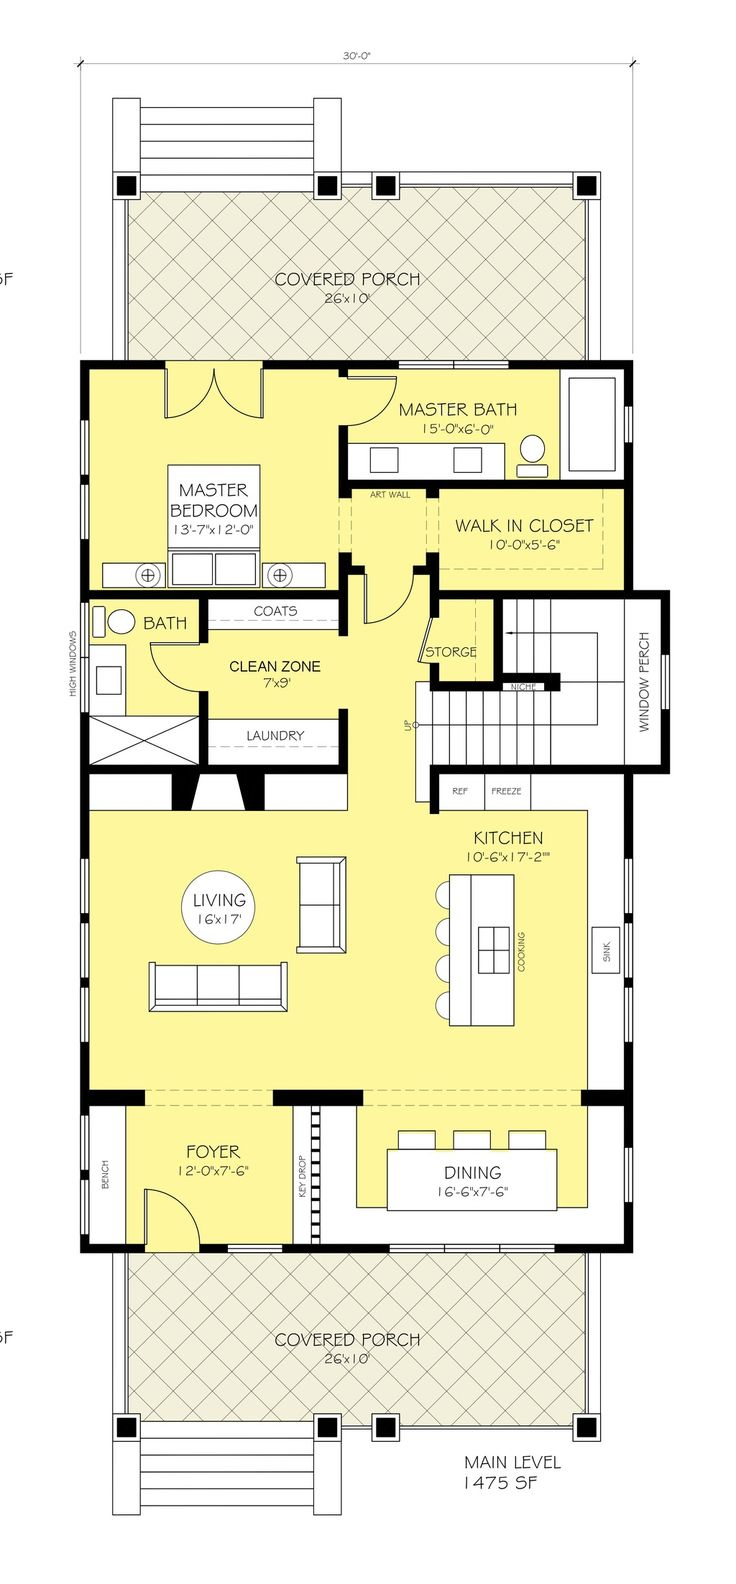 70 best great floor plans images on pinterest | architecture